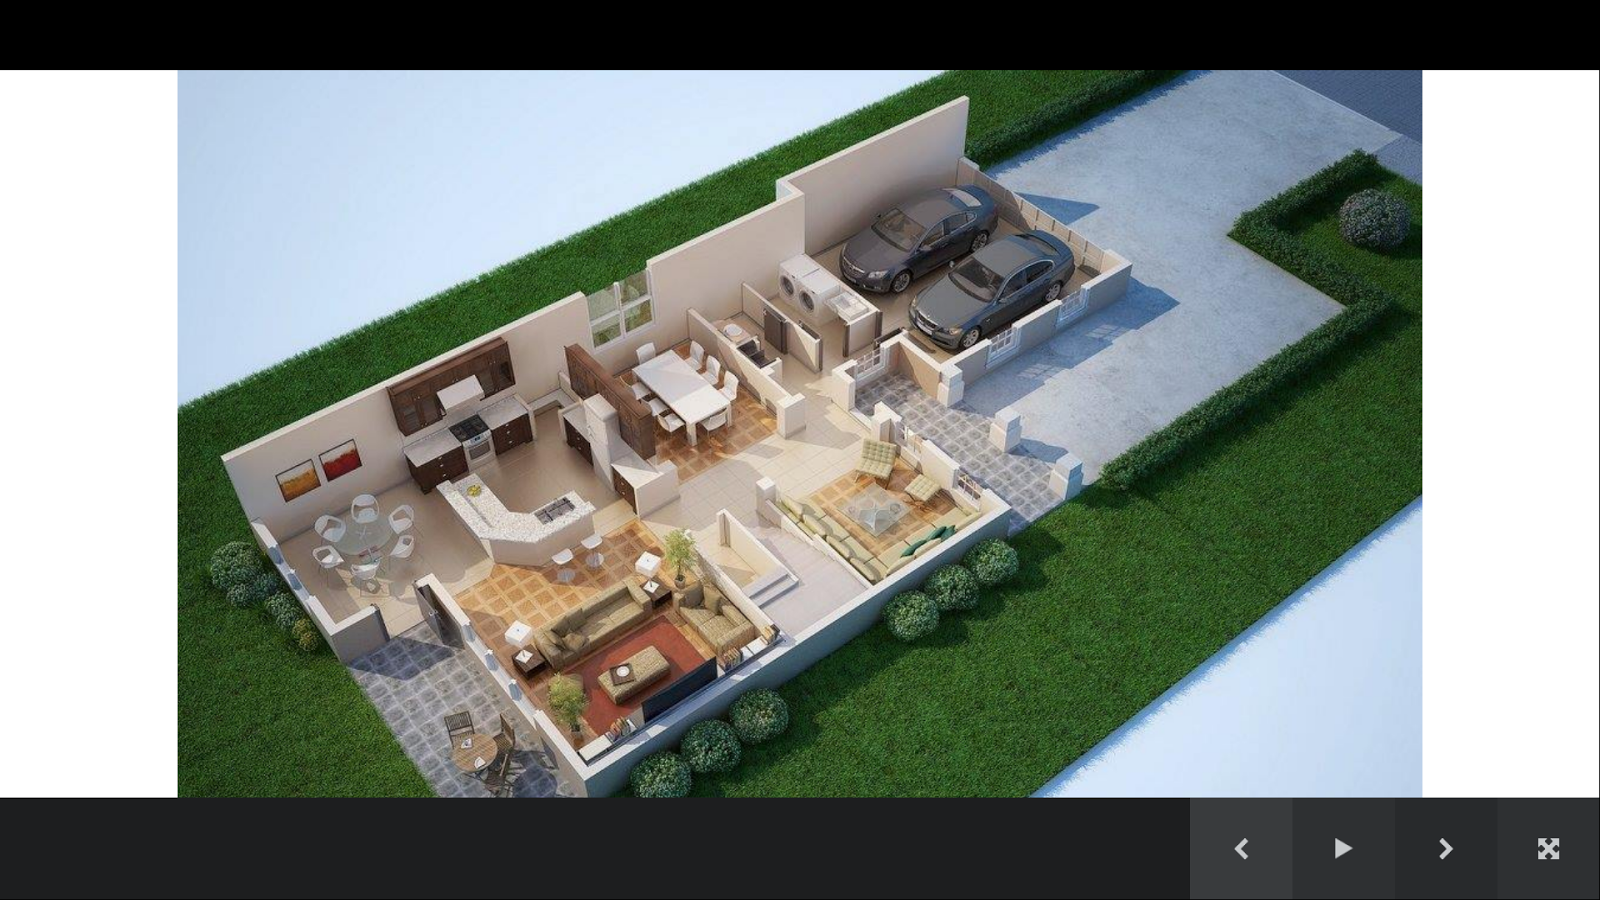 3d house plans - android apps on google play, Powerpoint templates